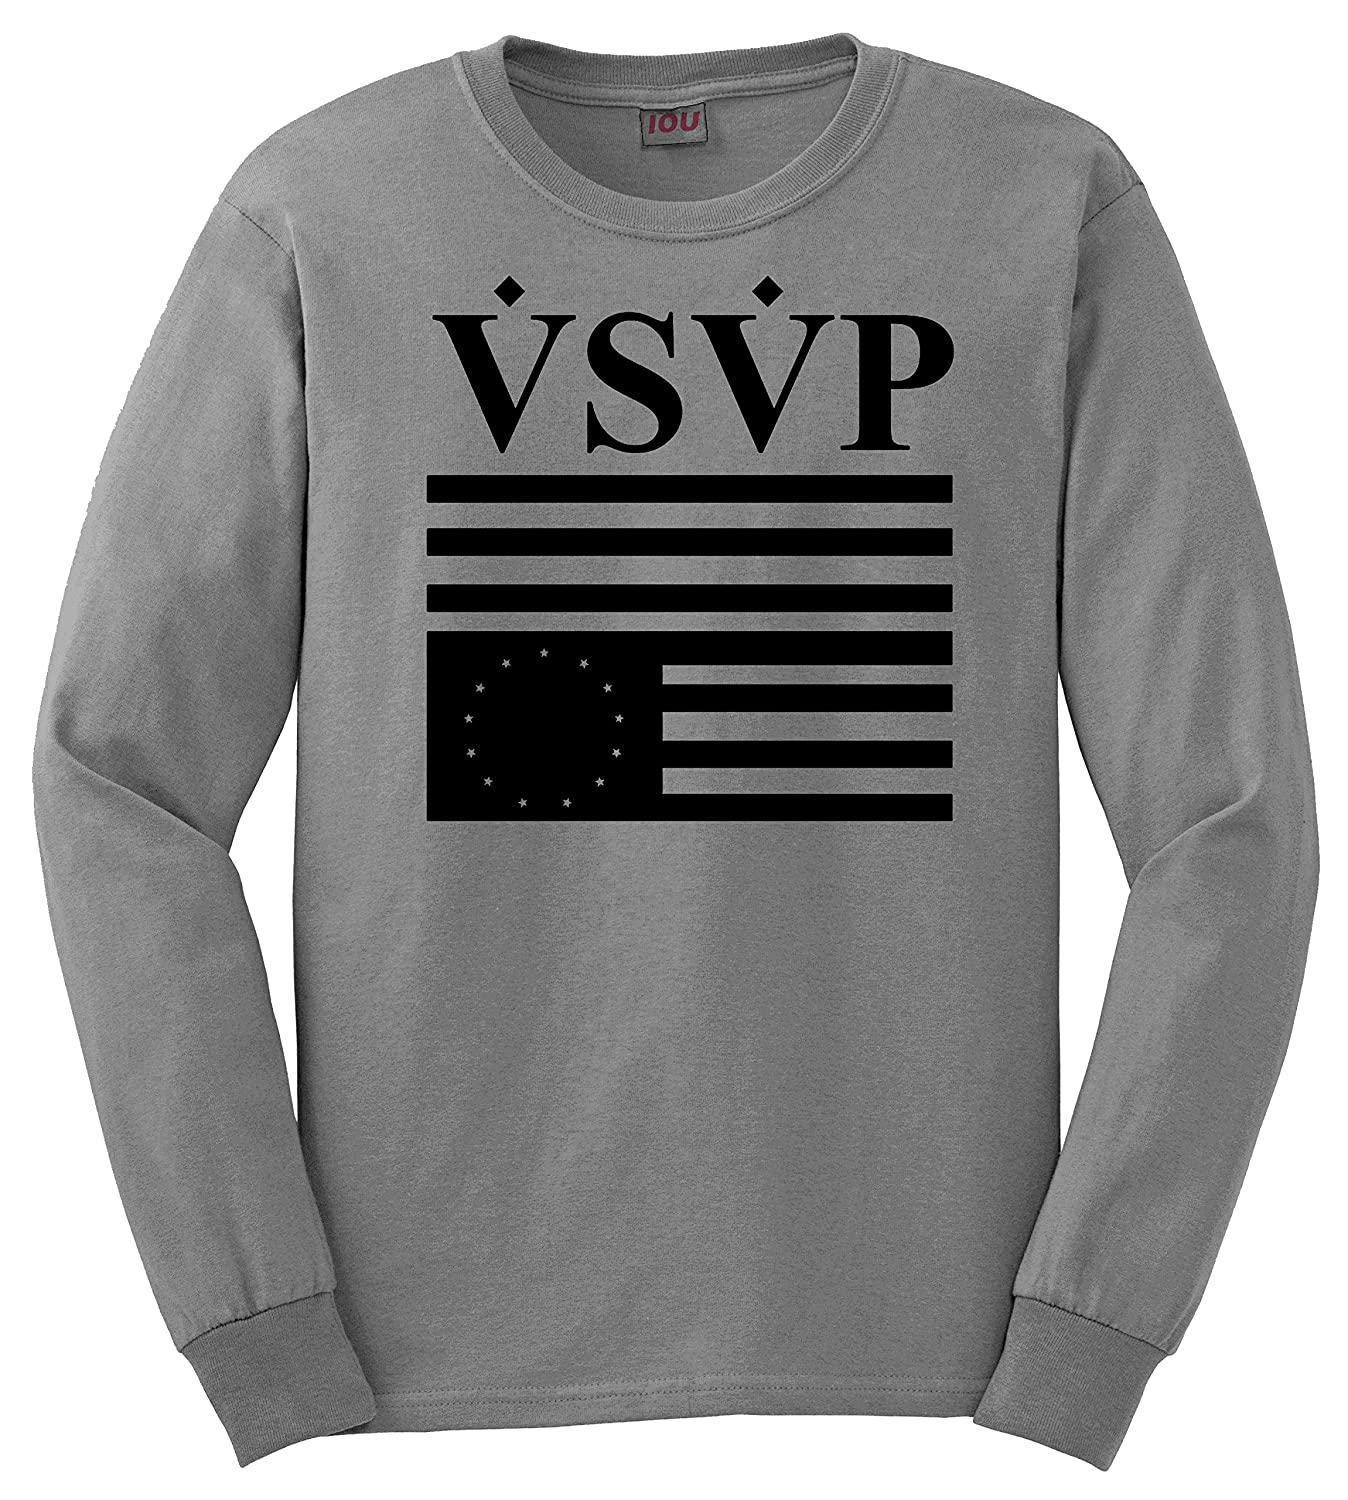 IOU VSVP ASAP Rocky Flag Long Sleeves Men's Crewneck Sweater